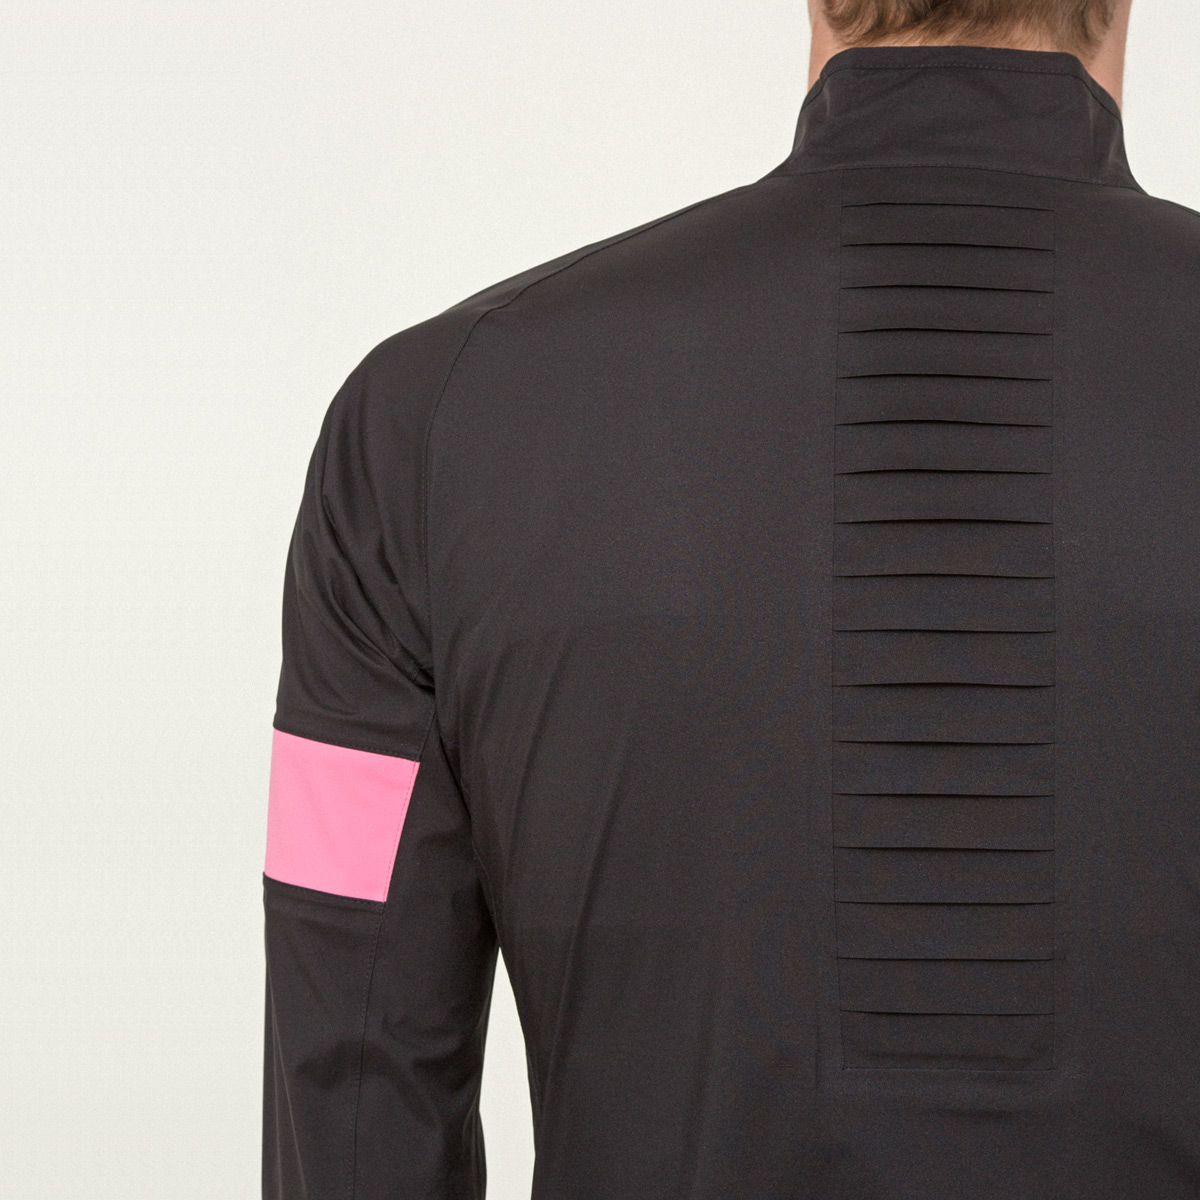 For 2017 Rapha has put together a couple of limited Collector s Edition  pieces of kit 1c77a4843